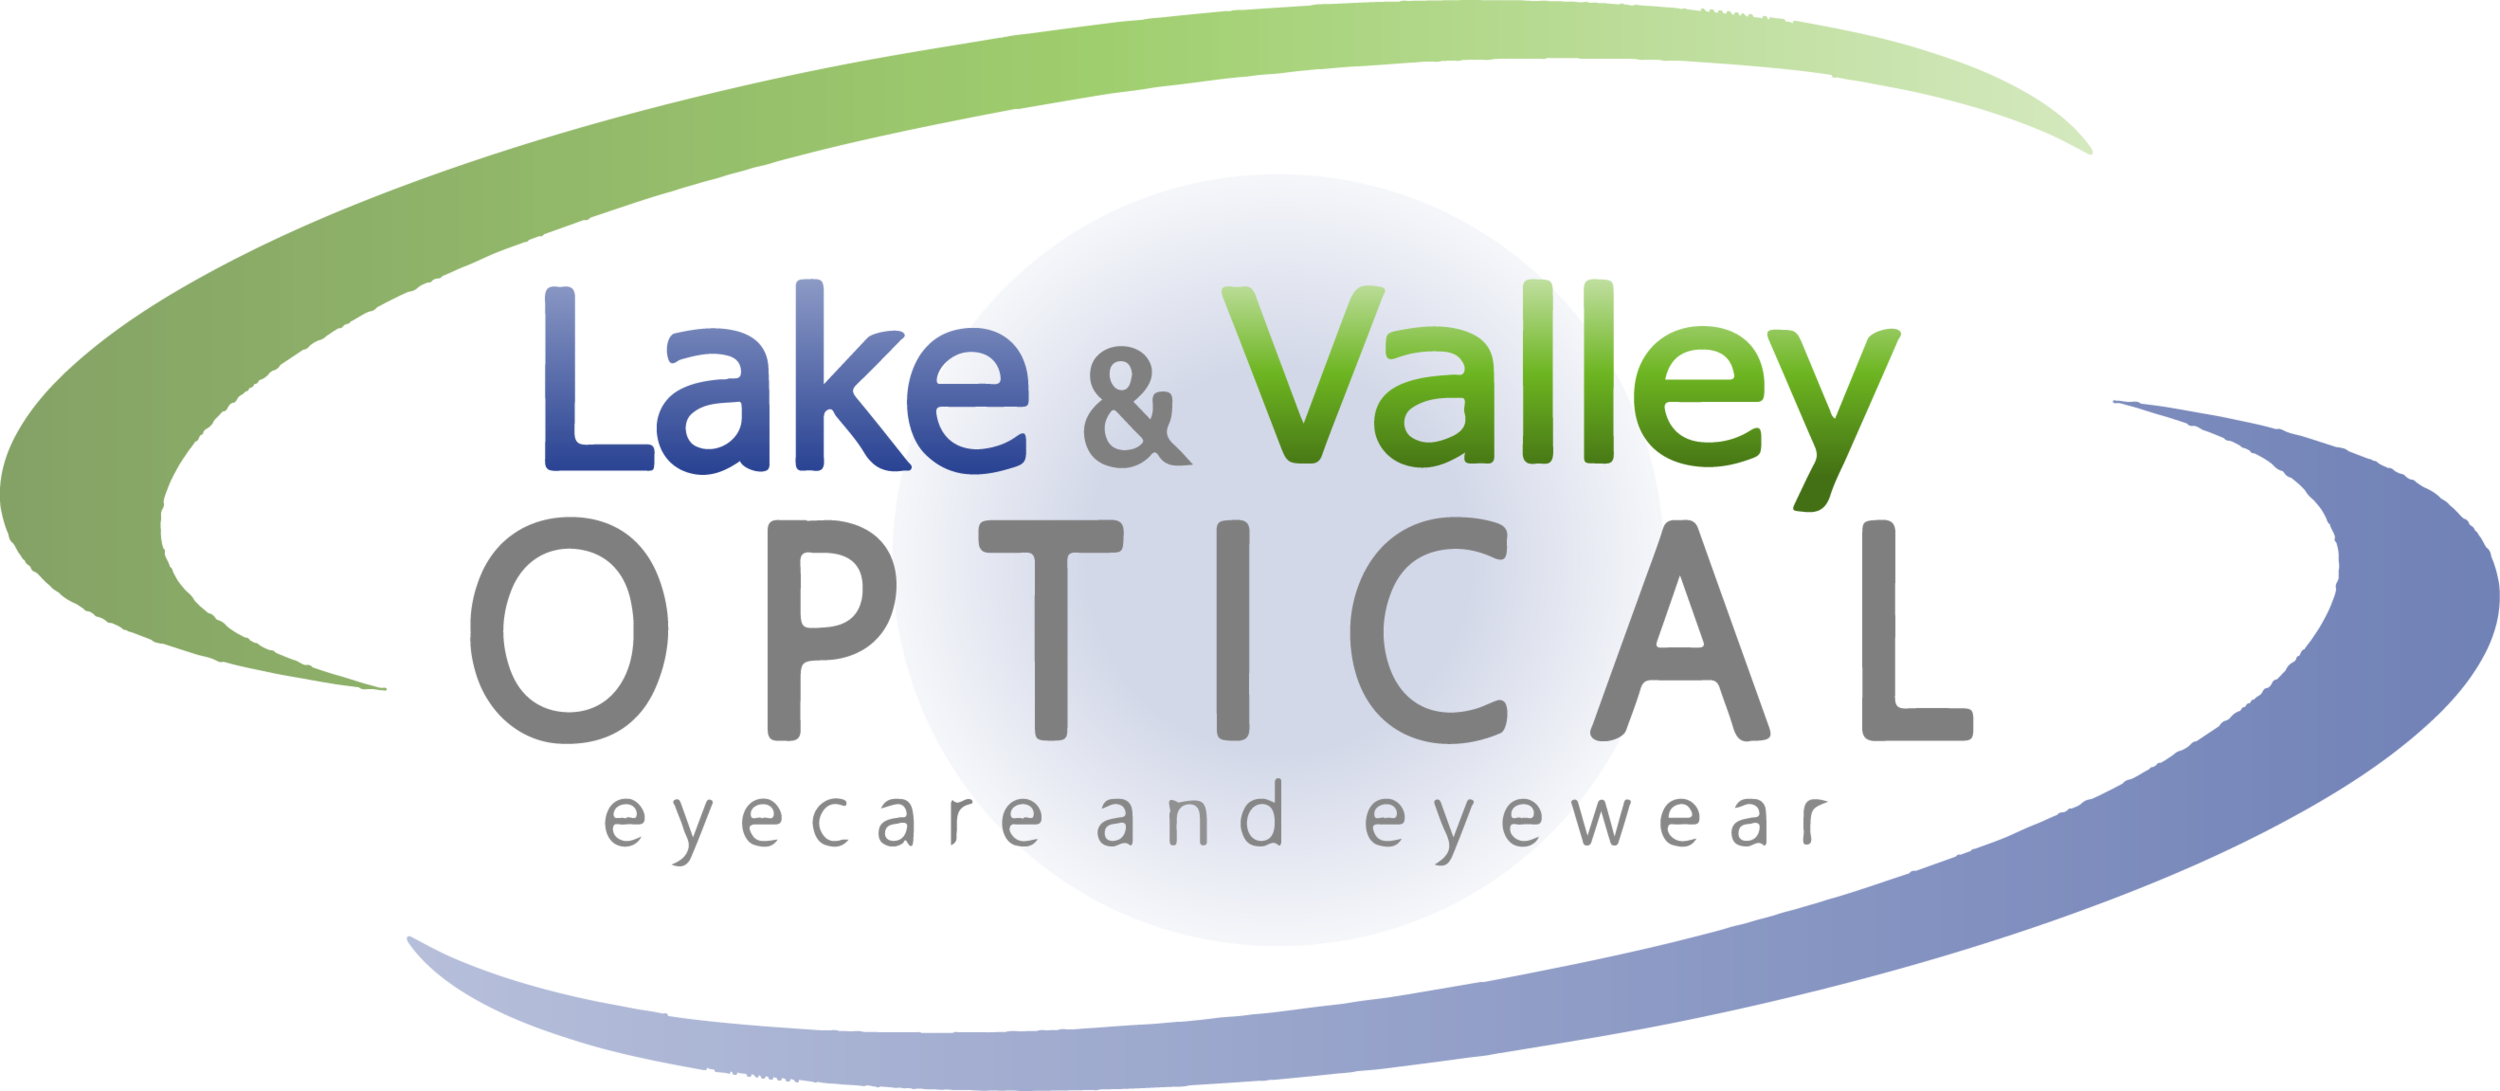 Lake and Valley Optical Eye Examinations